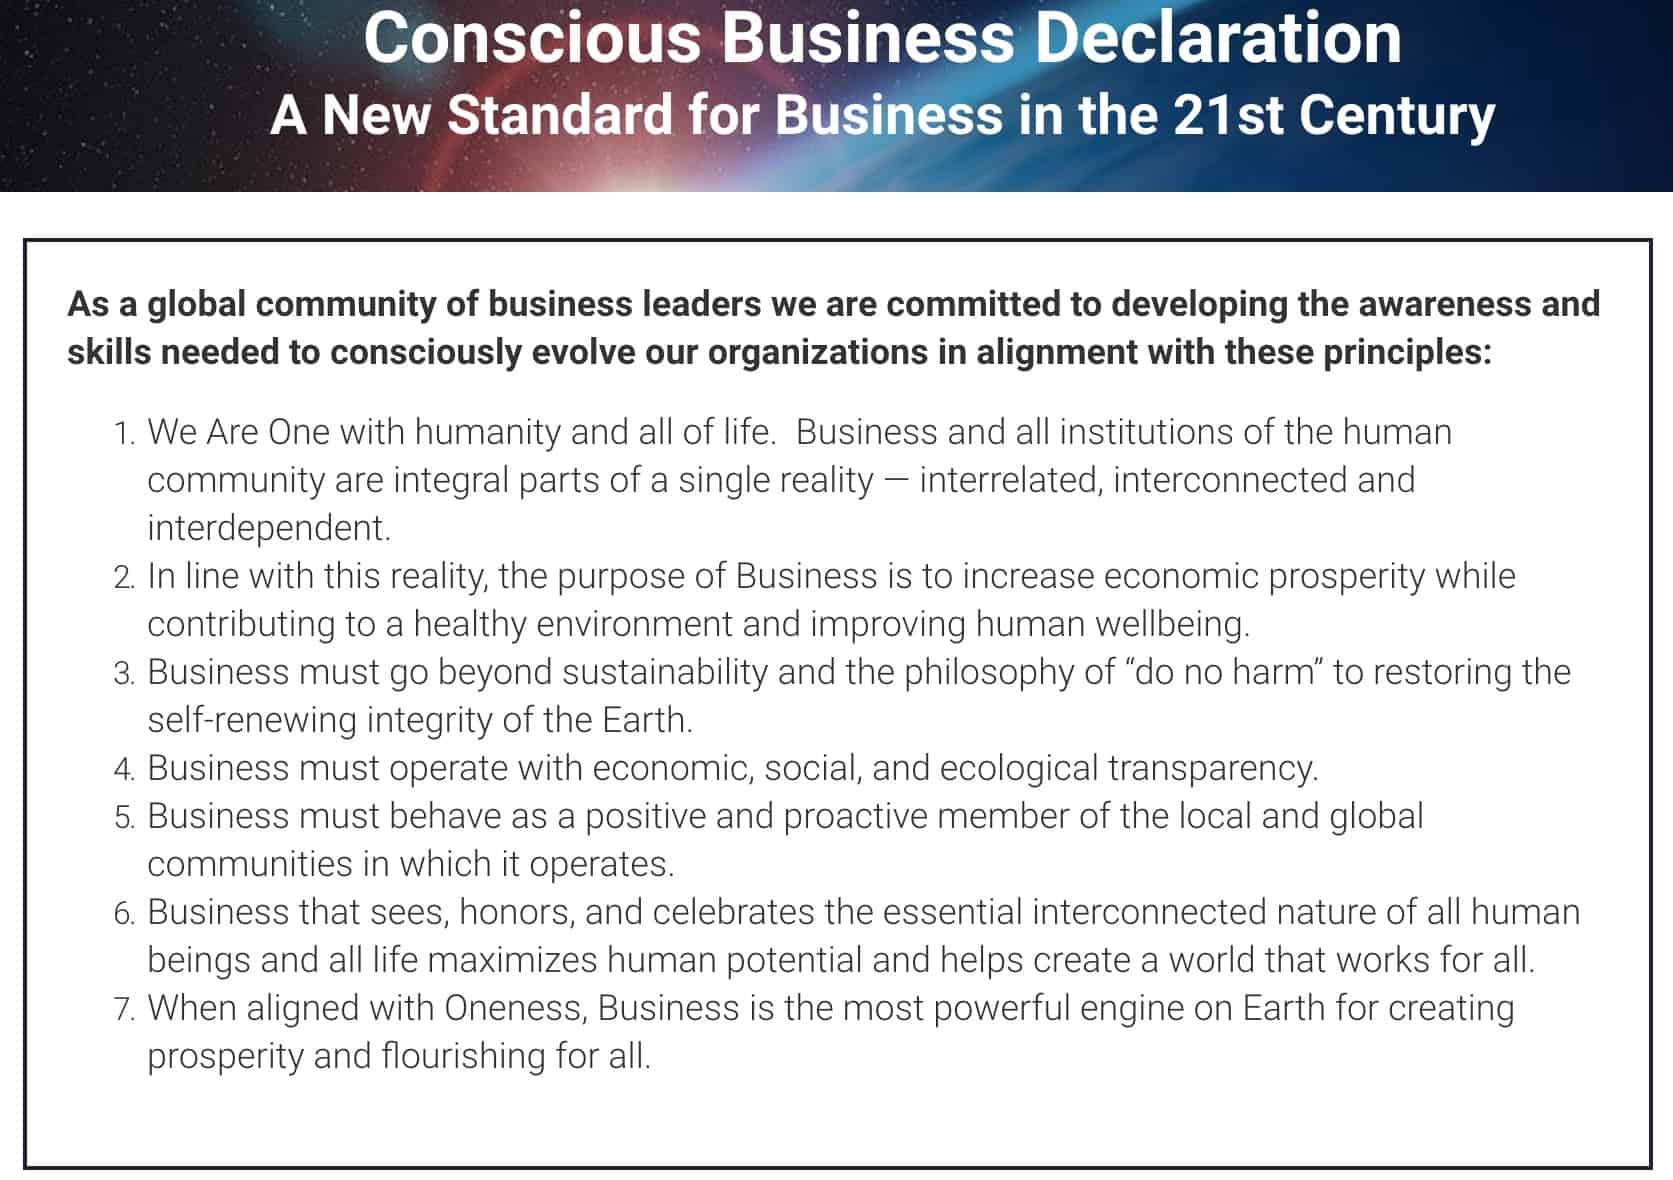 conscious business declaration- blurring the lines between charities&social enterprises